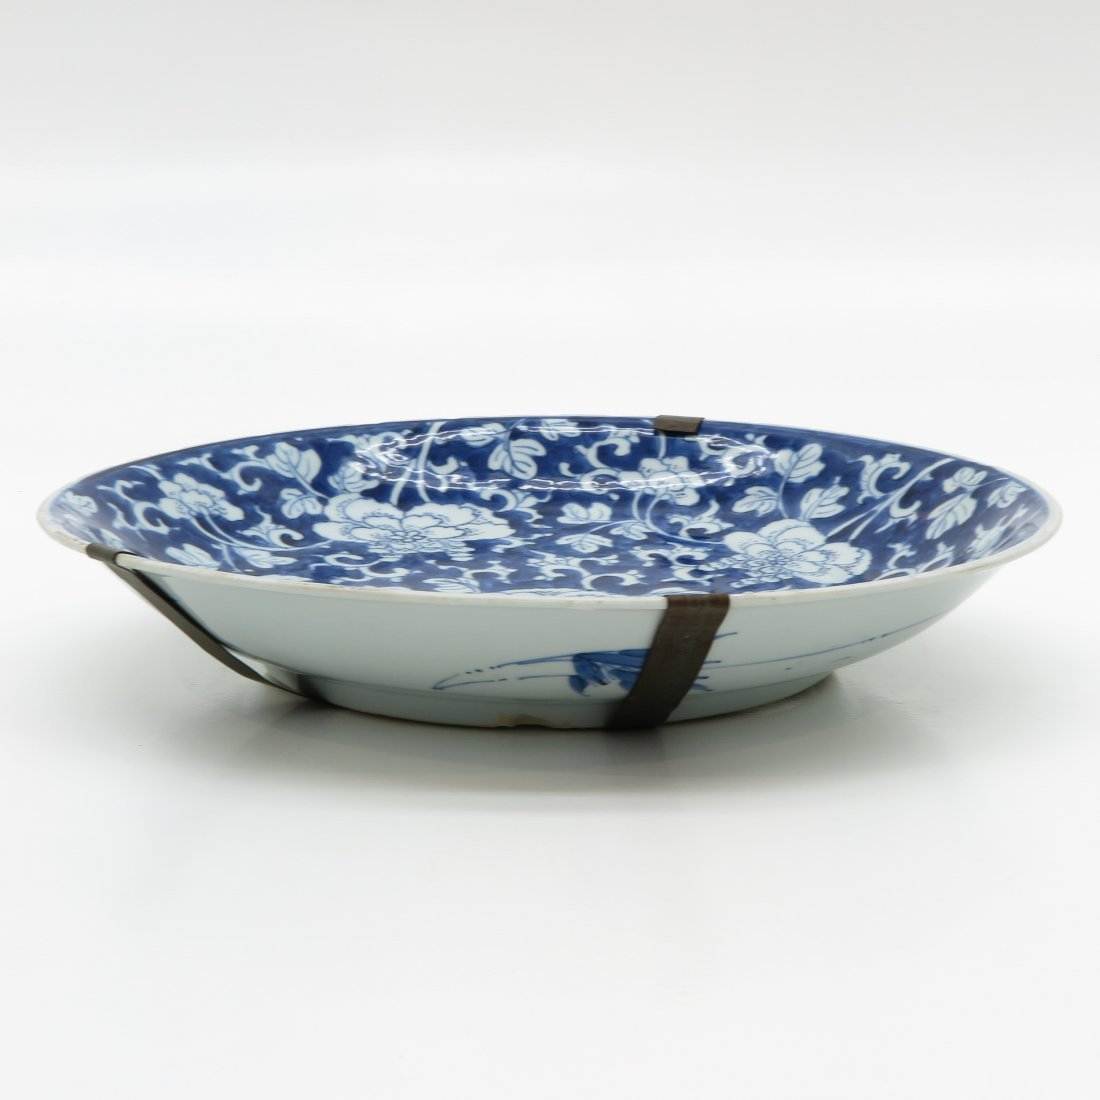 18th Century China Porcelain Plate - 3